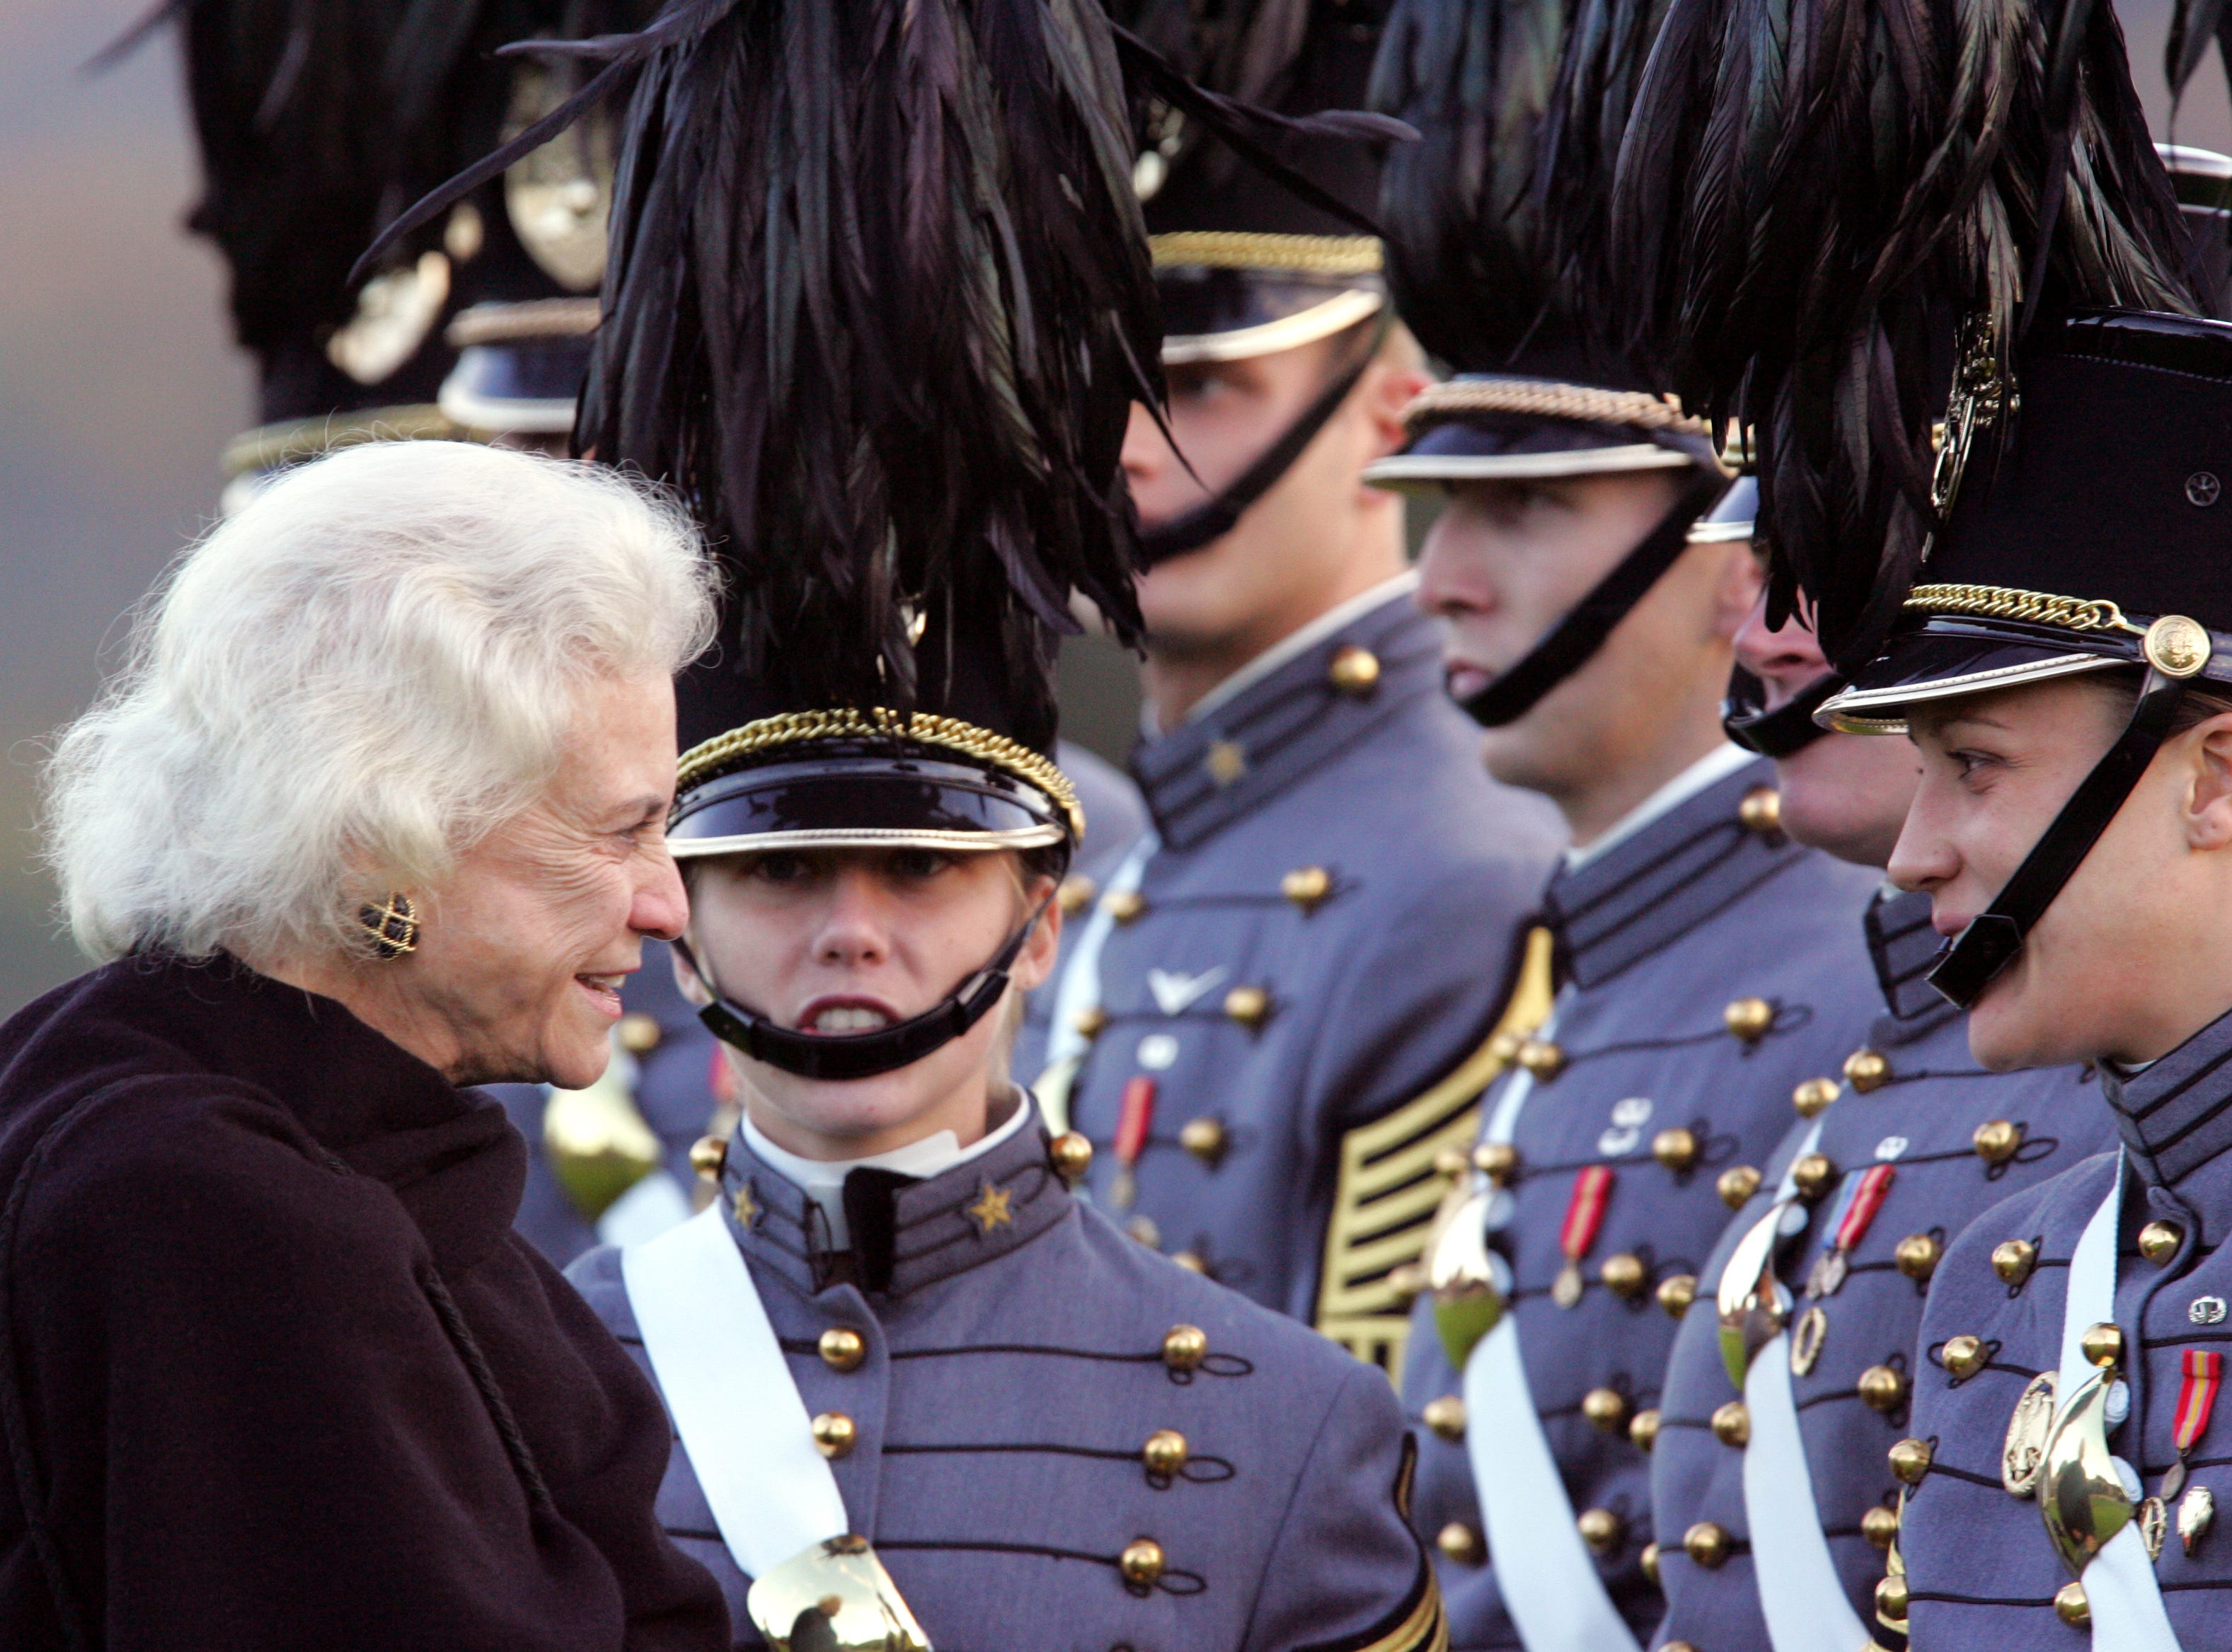 U.S. Supreme Court Justice Sandra Day O'Connor is introduced to members of the cadet corps by Cadet First Capt. Stephanie Hightower, second from left, of Rio Rancho, N.M., after O'Connor reviewed the corps and before receiving the Sylvanus Thayer Award on Thursday, Oct. 20, 2005, at the U.S. Military Academy at West Point, N.Y.